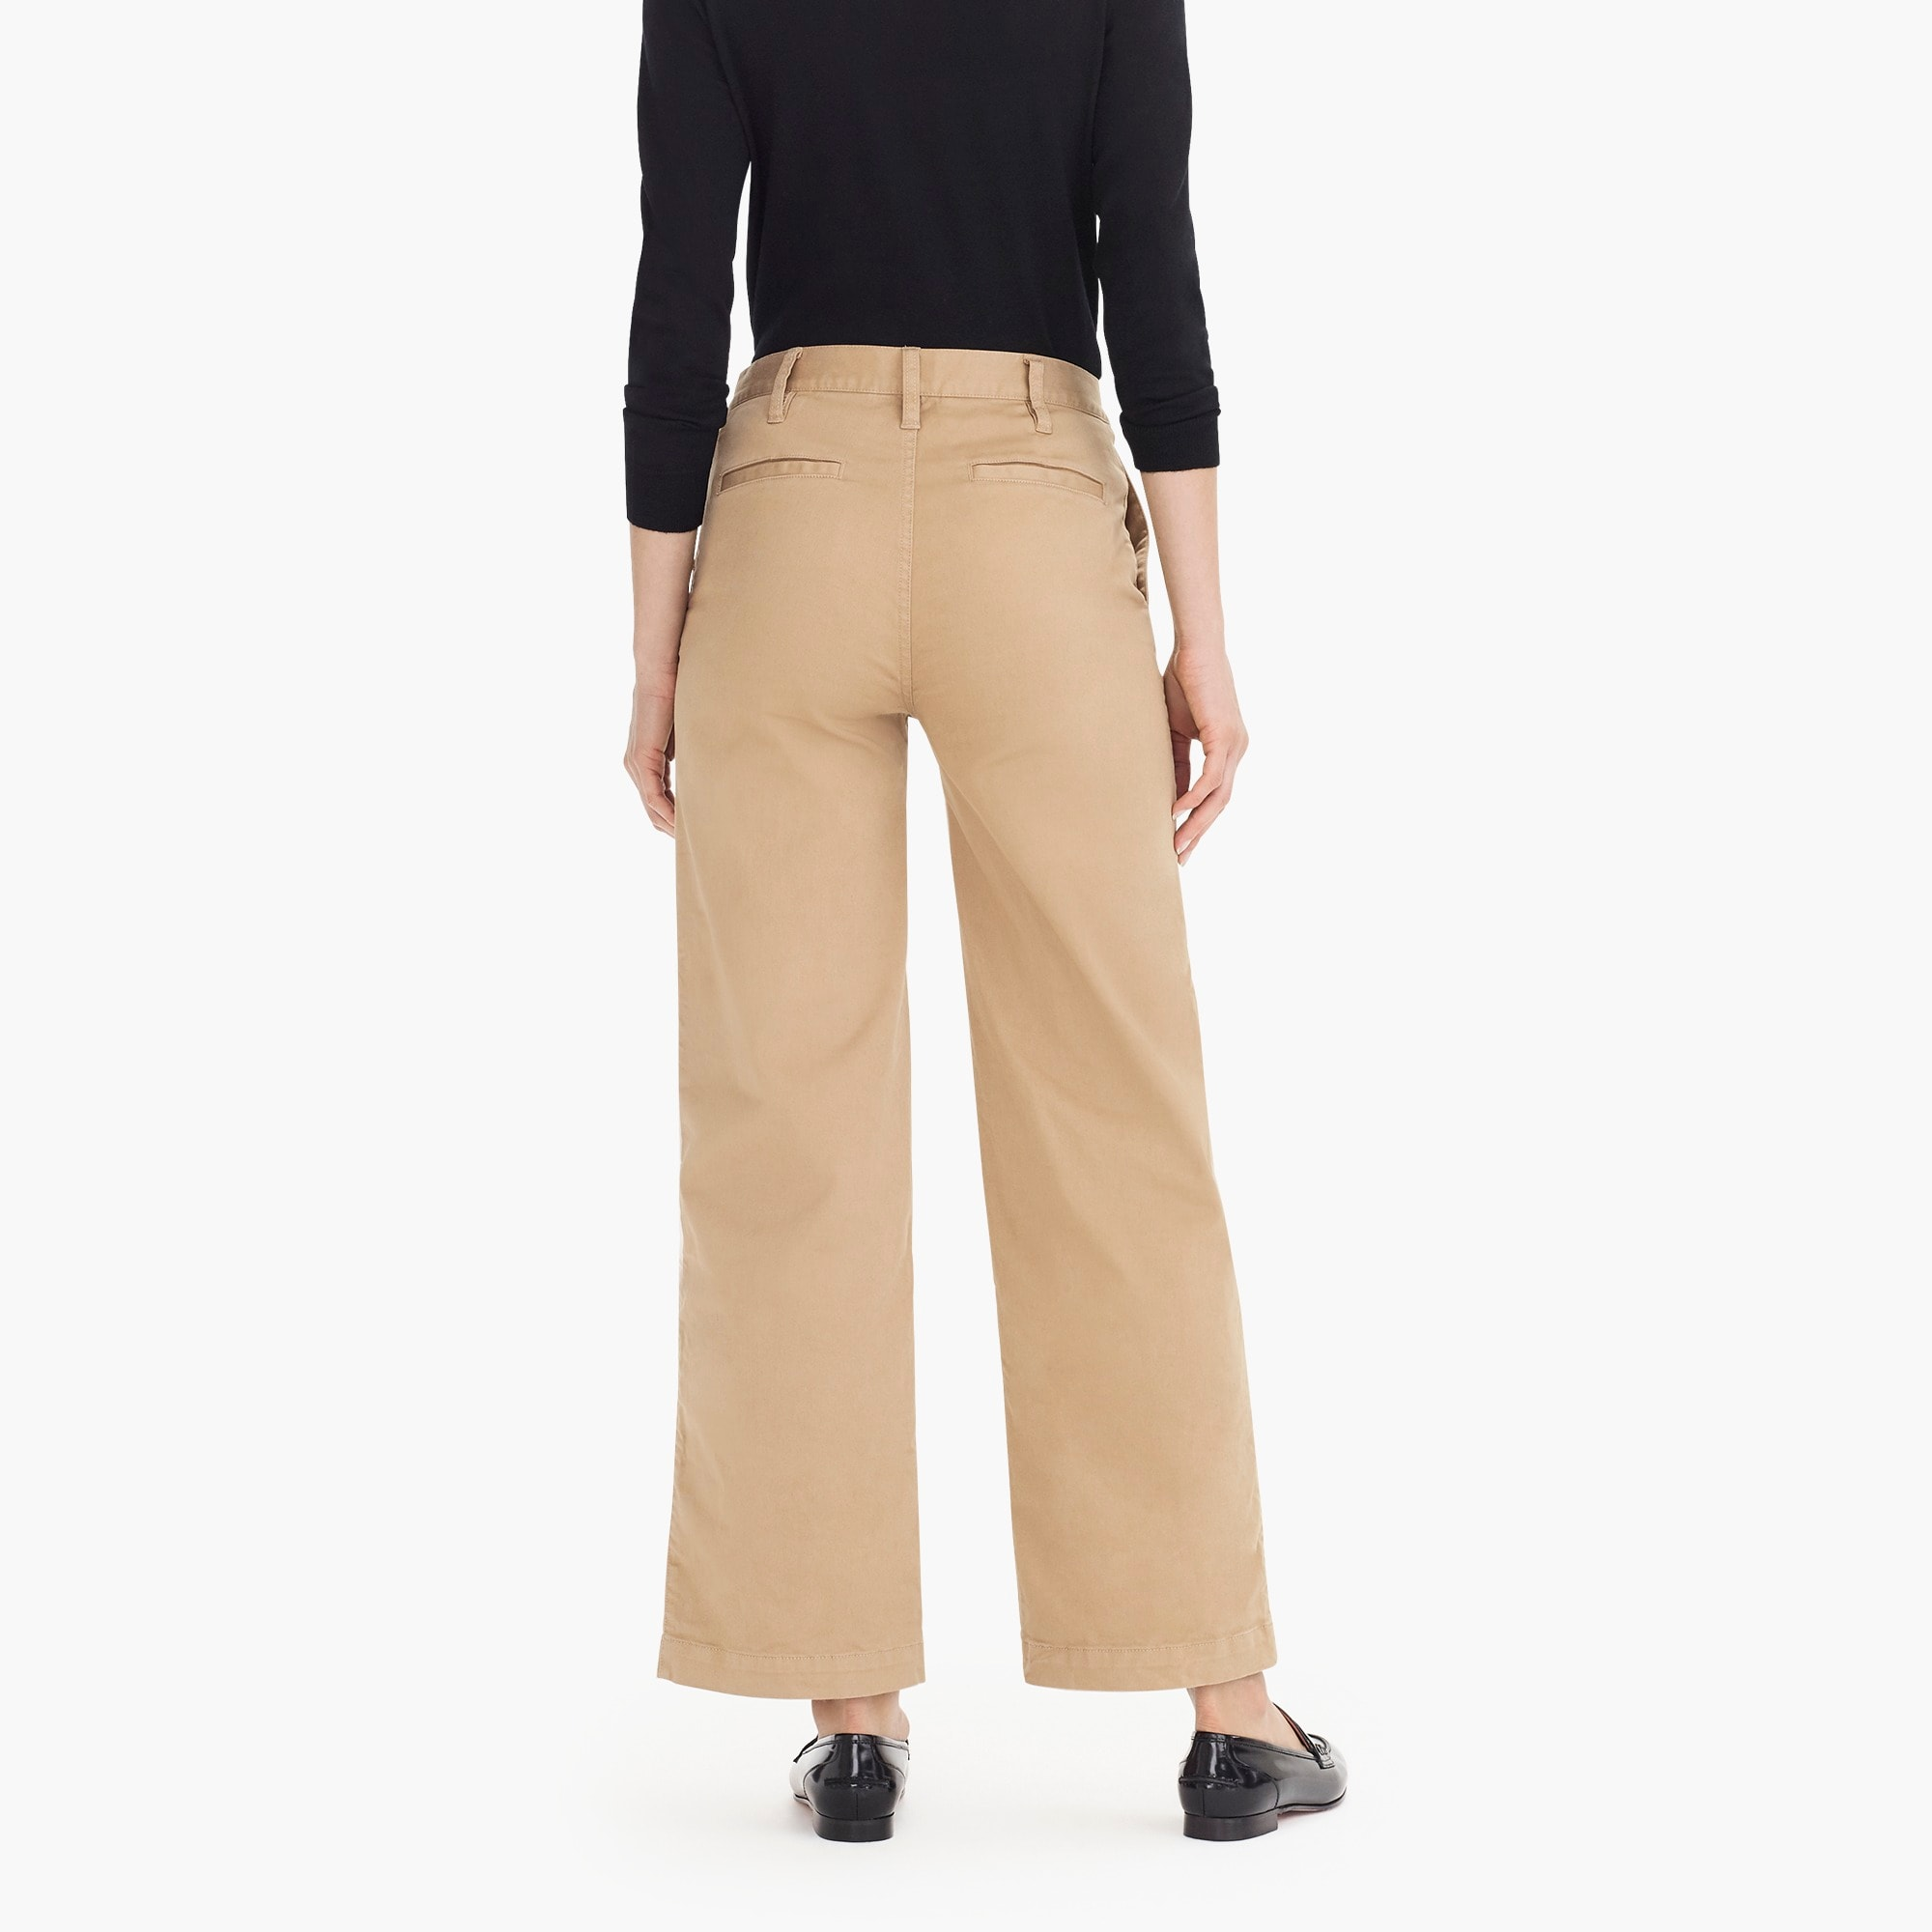 Image 6 for Petite full-length wide-leg chino pant